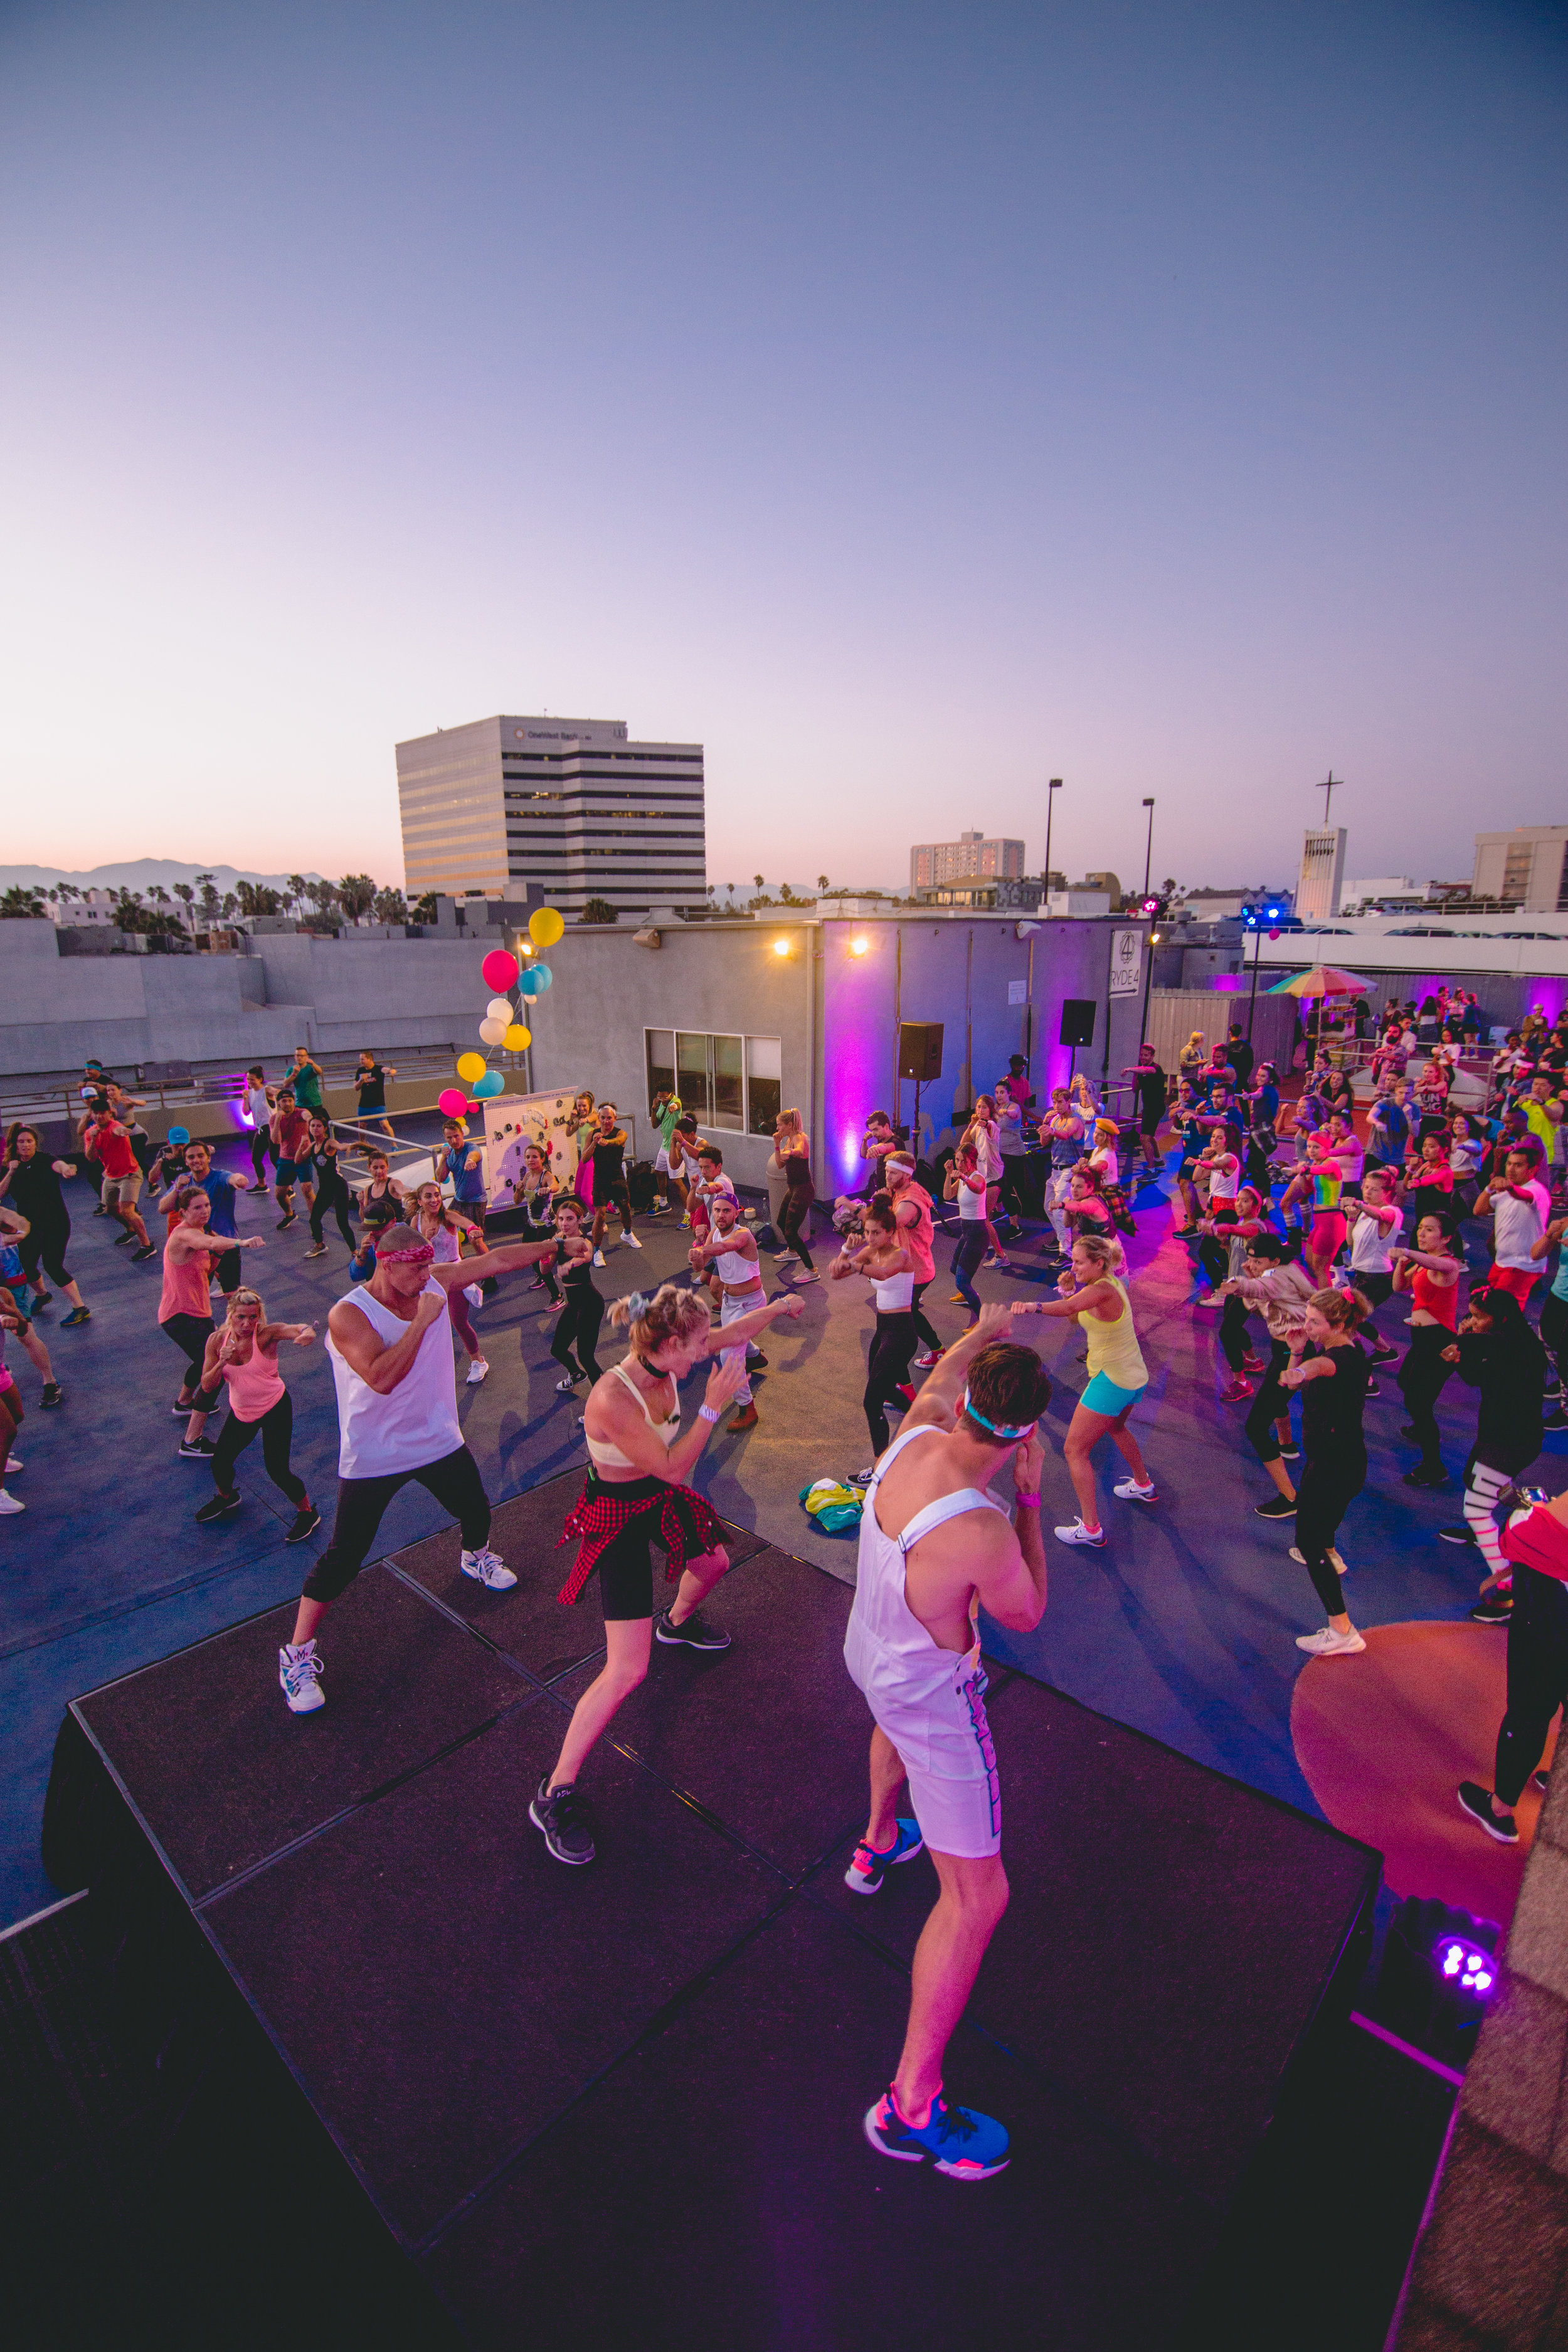 Lululemon 20th Anniversary Party  - Where: Burn Fitness Rooftop When:  August 22, 2018 at 7pm Over 200 guests present at event and workout